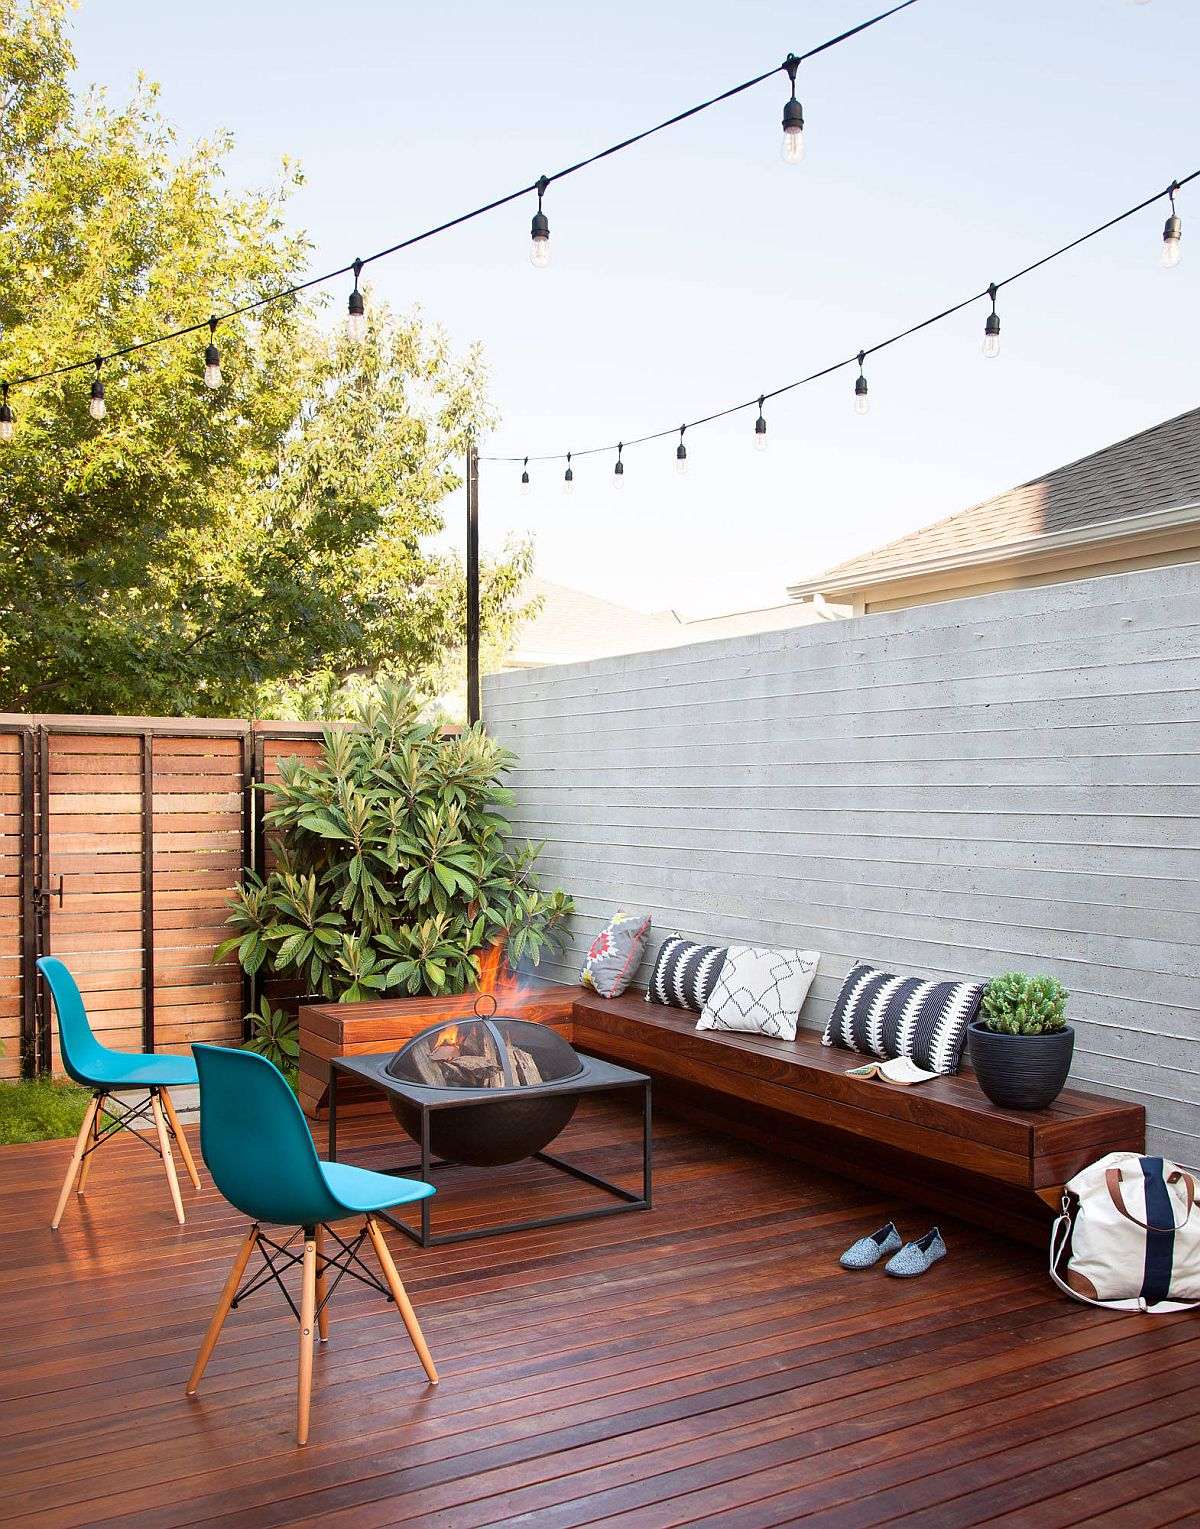 Private wooden deck design with fire pit, custom wooden bench and string lighting